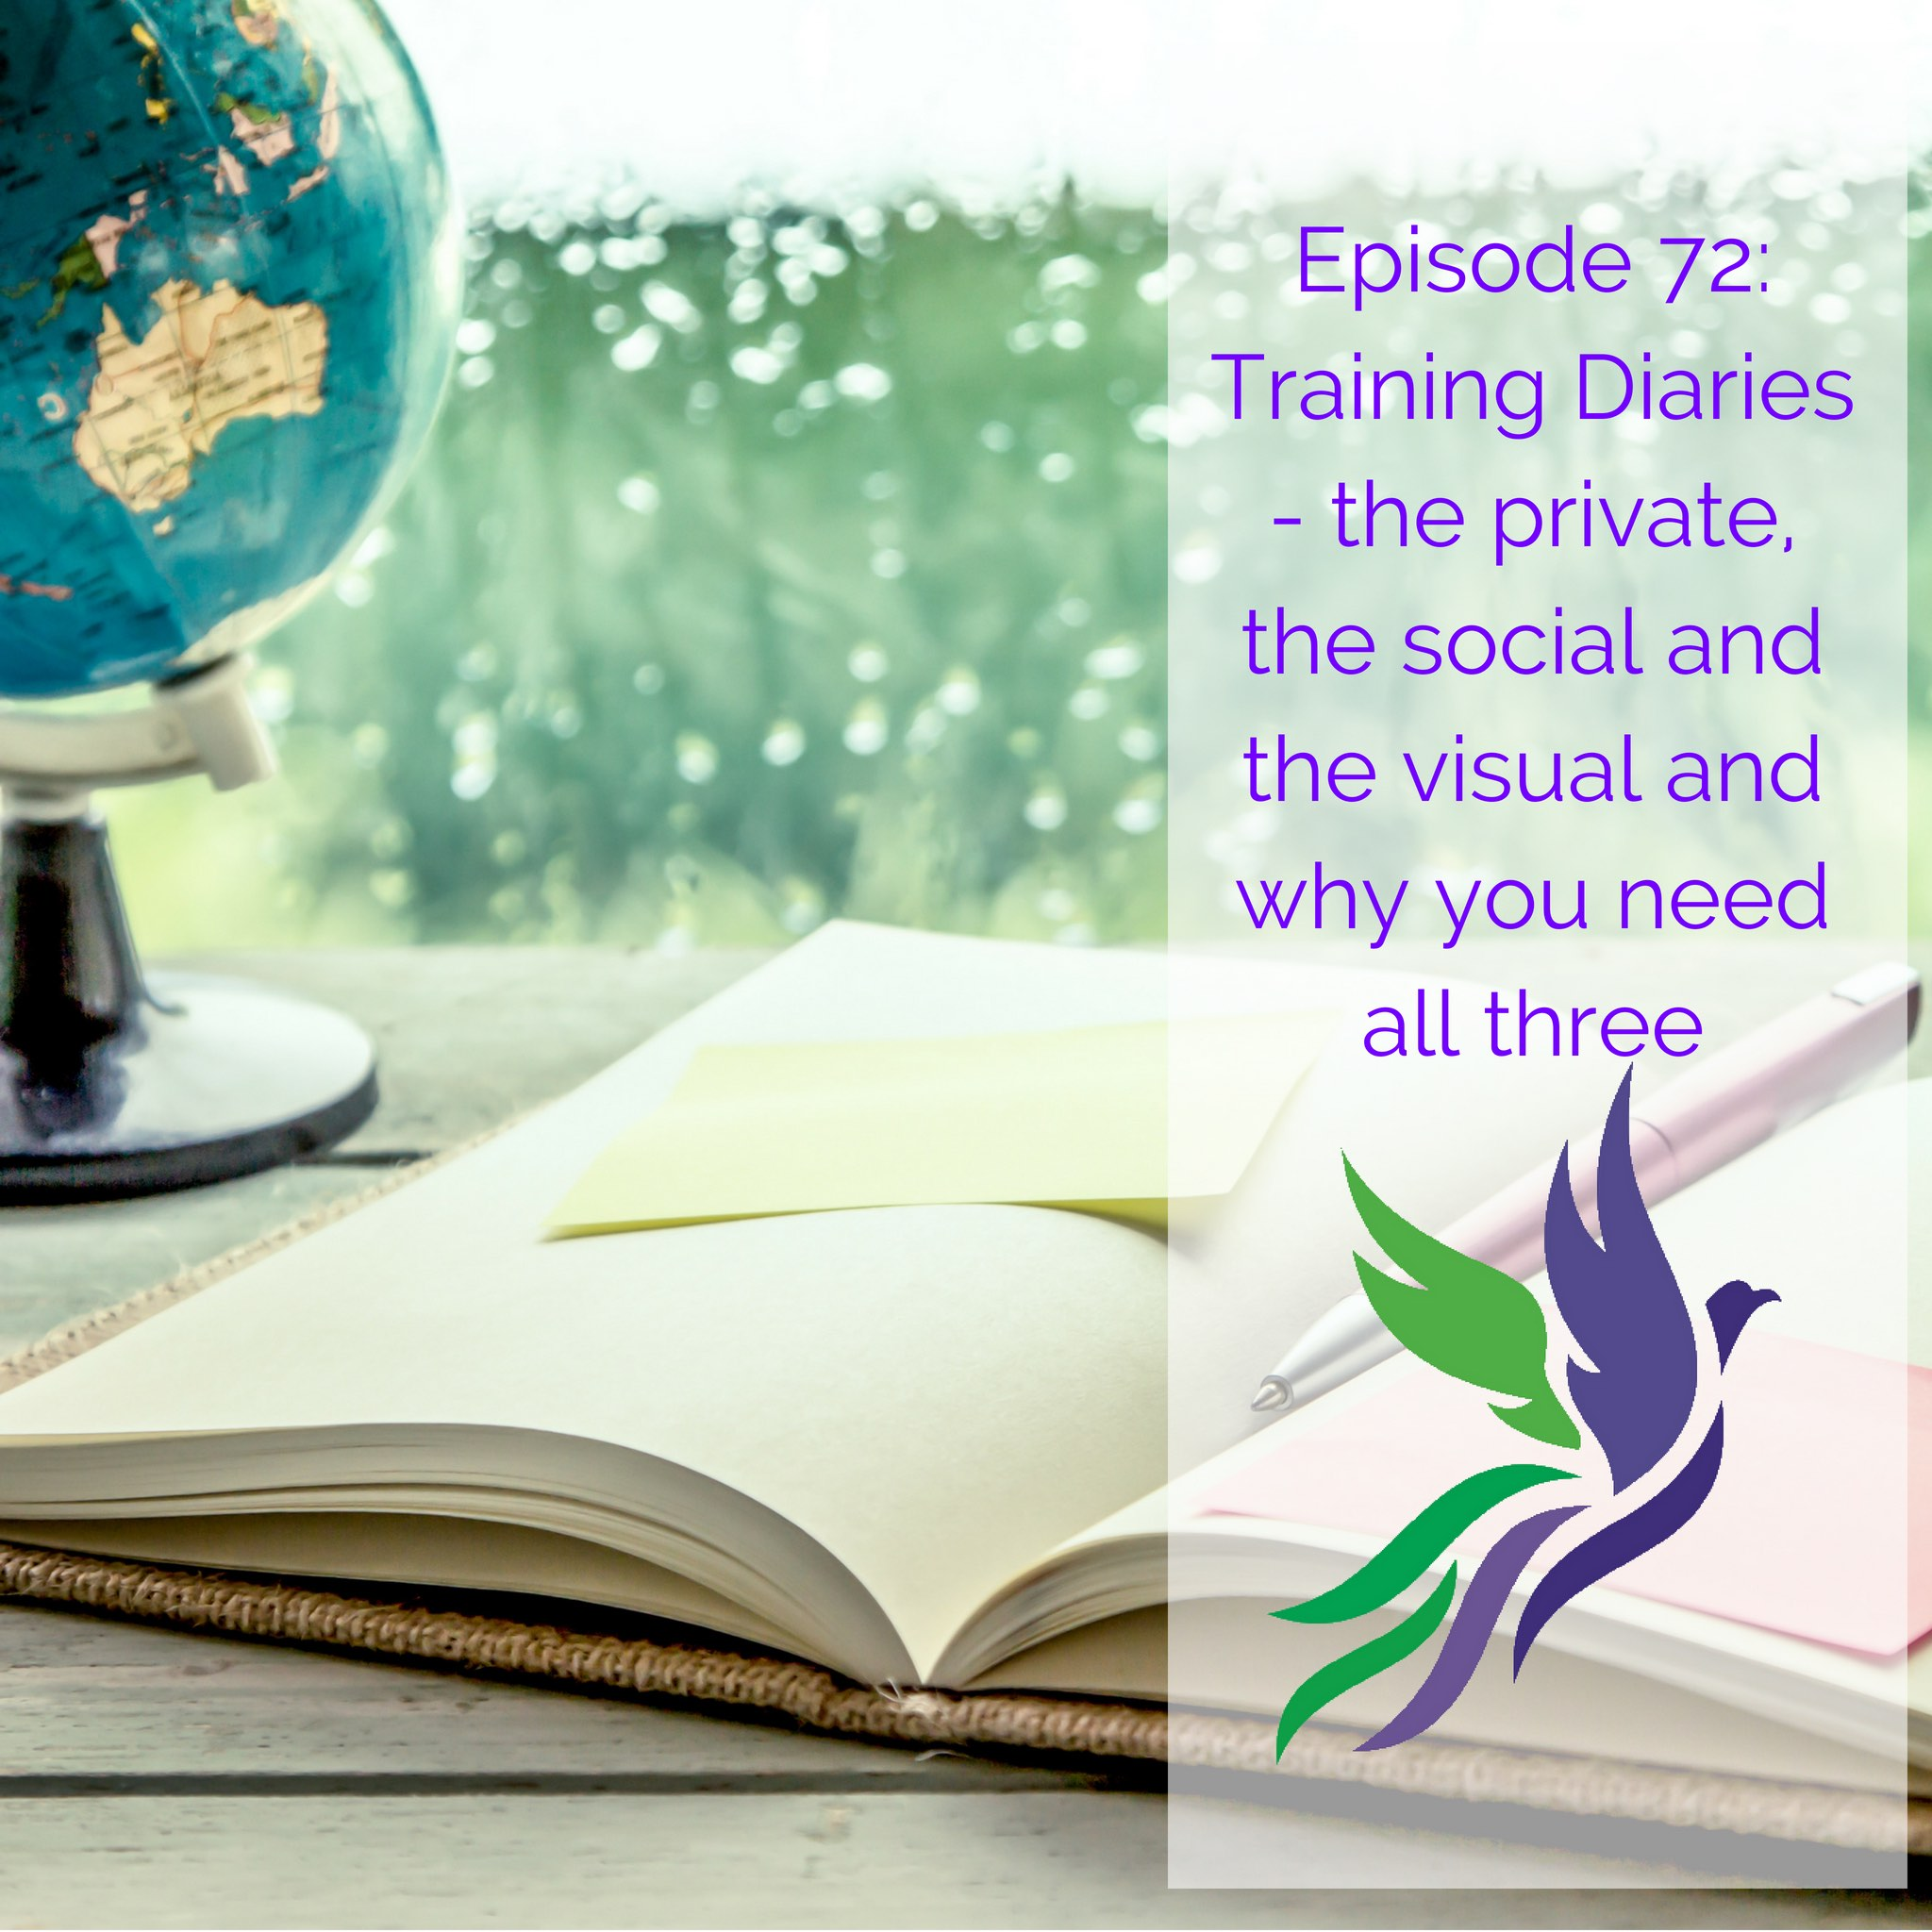 #72 Training Diaries - the private, the social and the visual and why you need all three